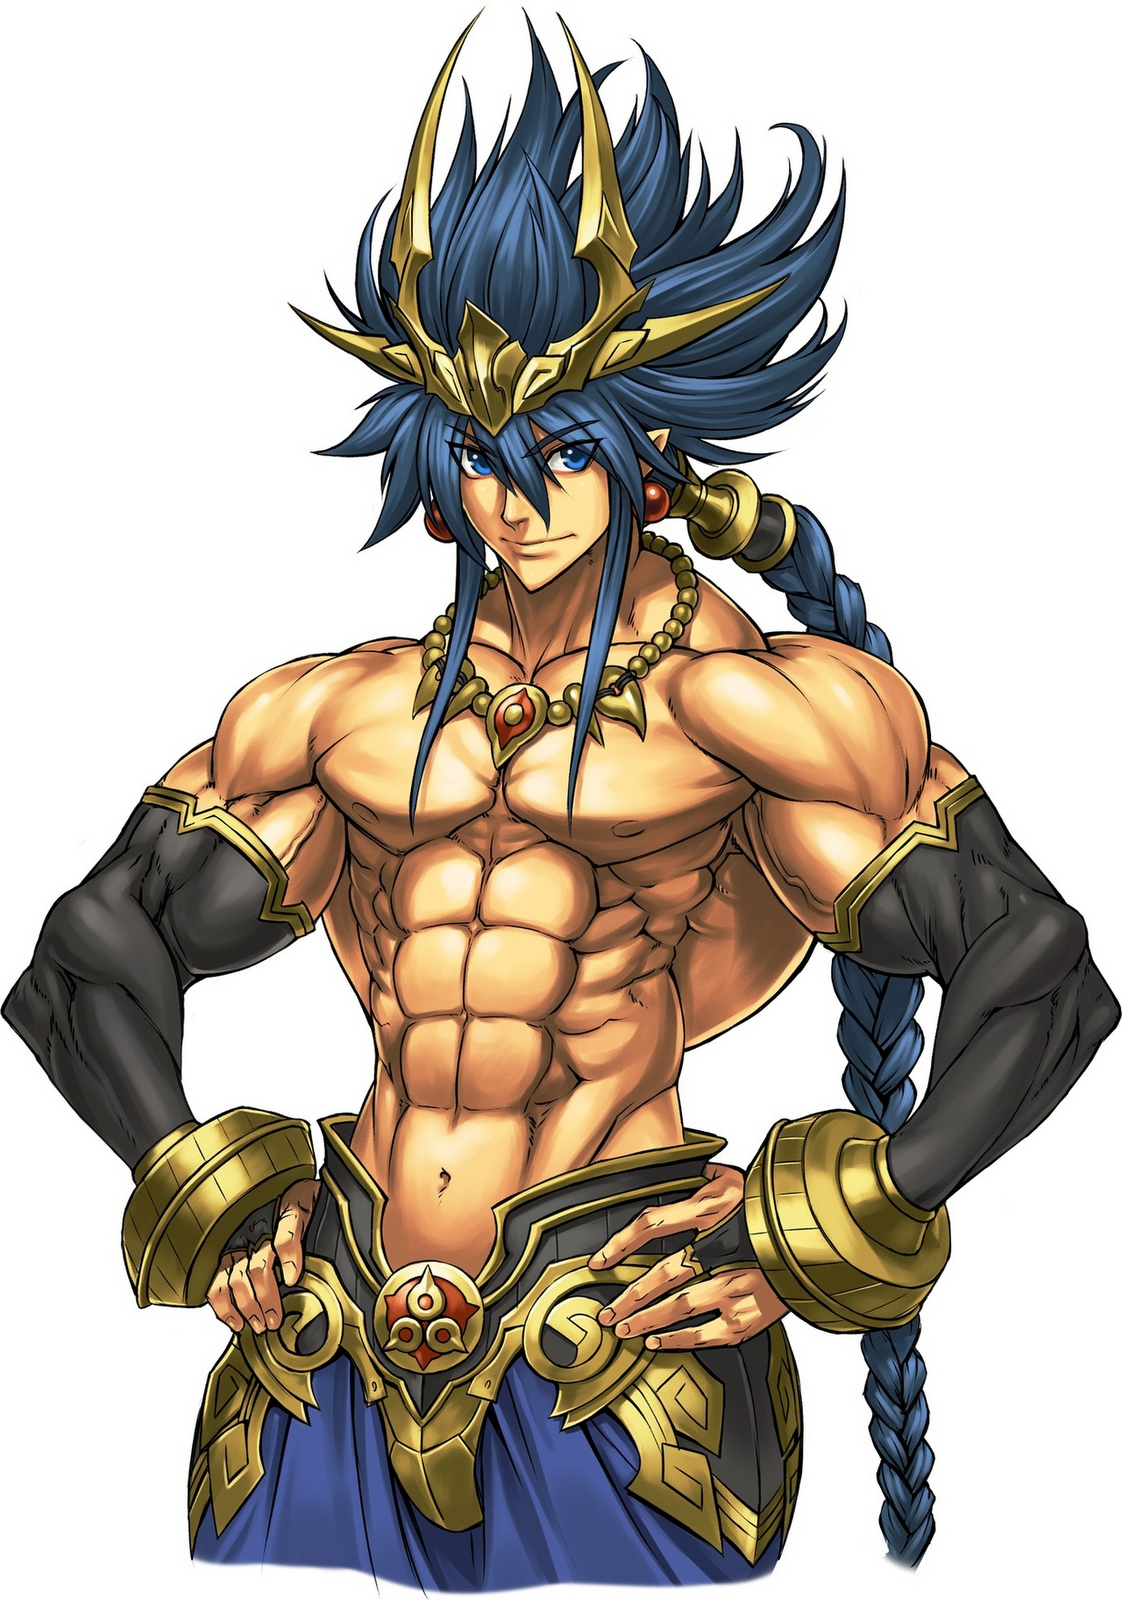 Muscular Anime Characters : muscular, anime, characters, Anime, Style, Character, Warrior,, Warrior, Drawing,